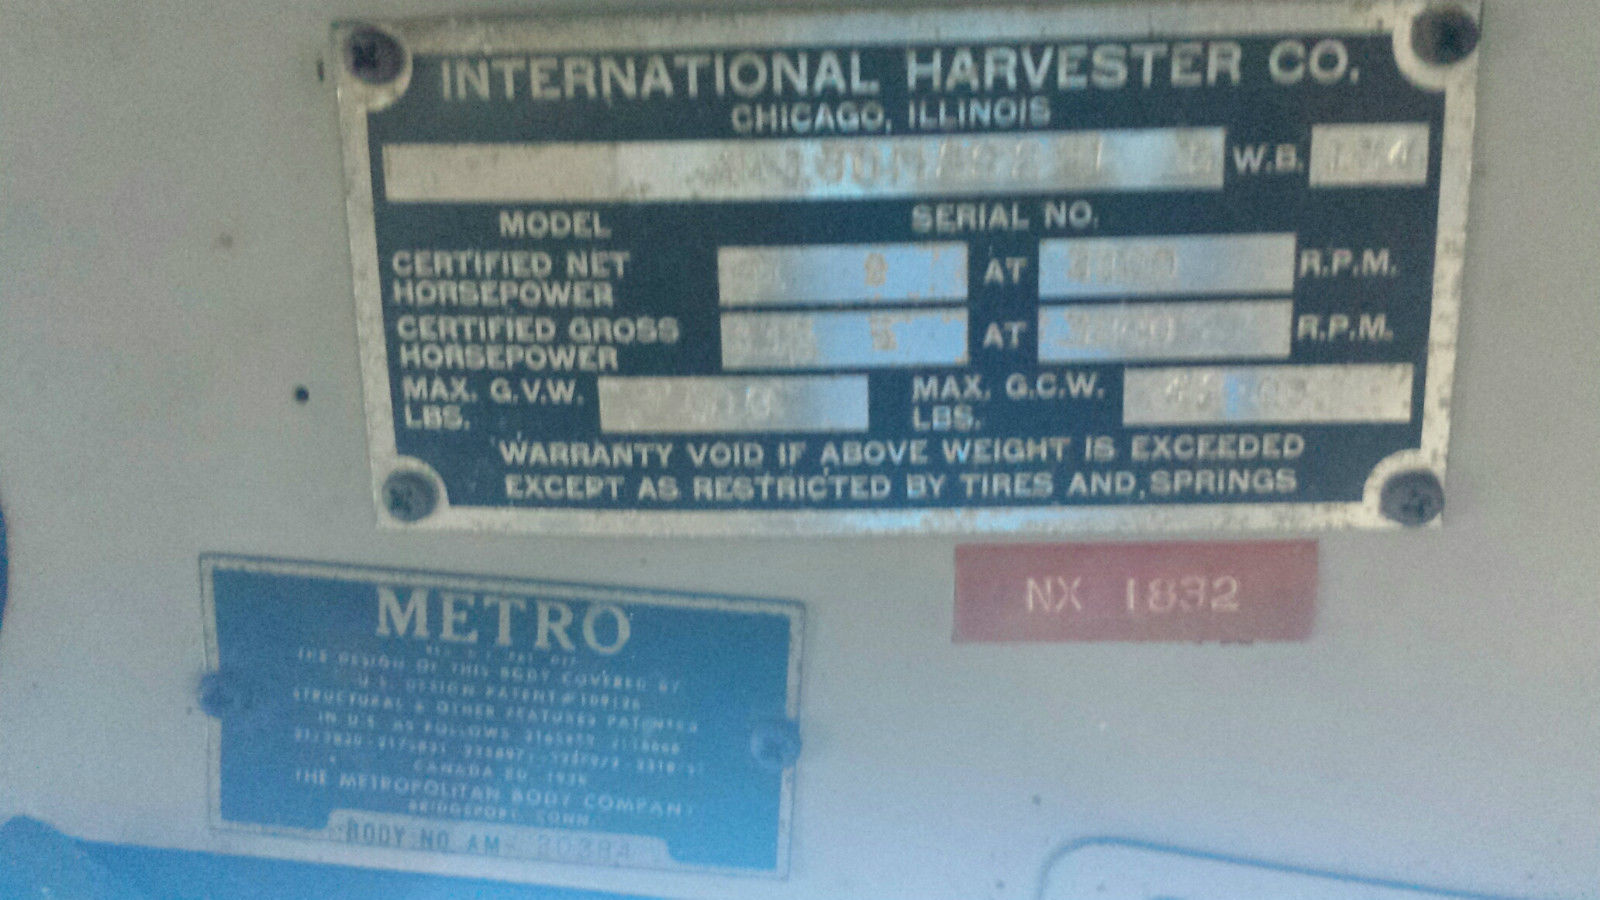 International harvester metro photo - 3